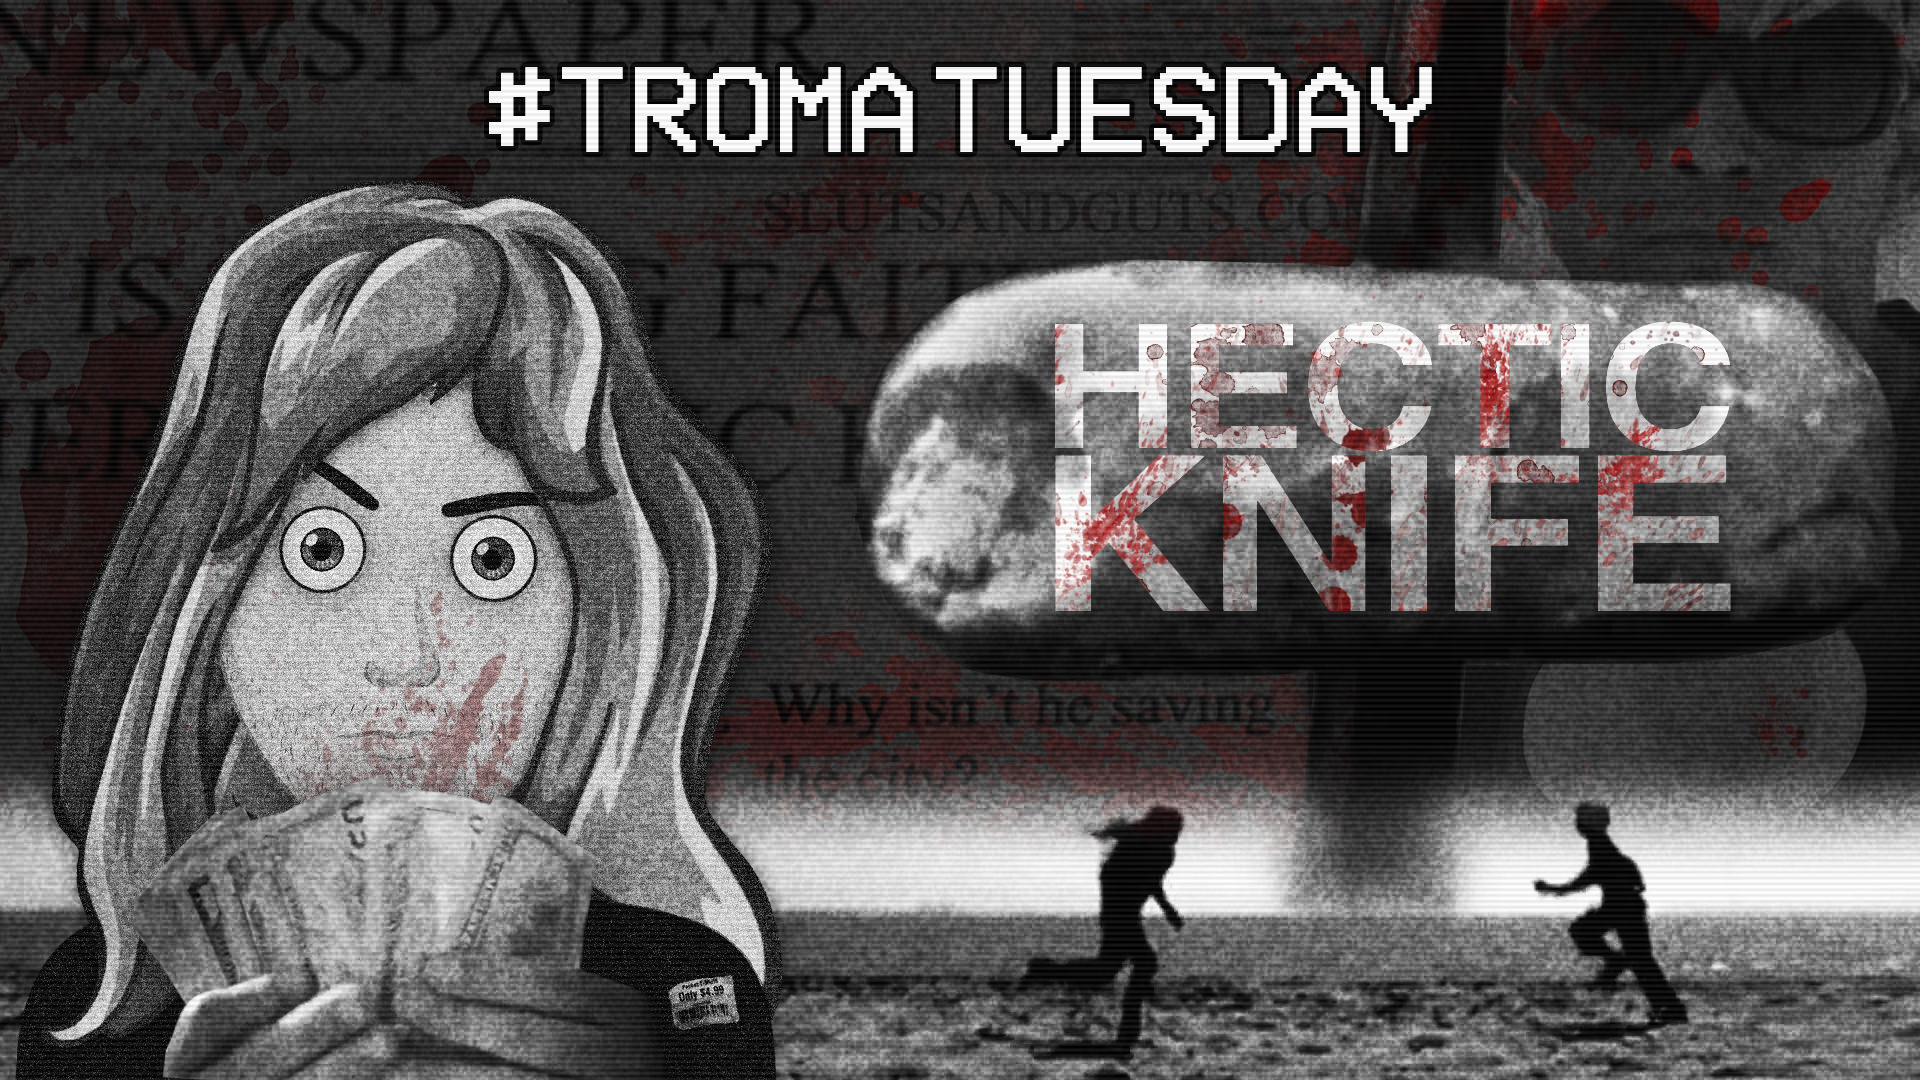 Troma Tuesday – Hectic Knife Movie Review